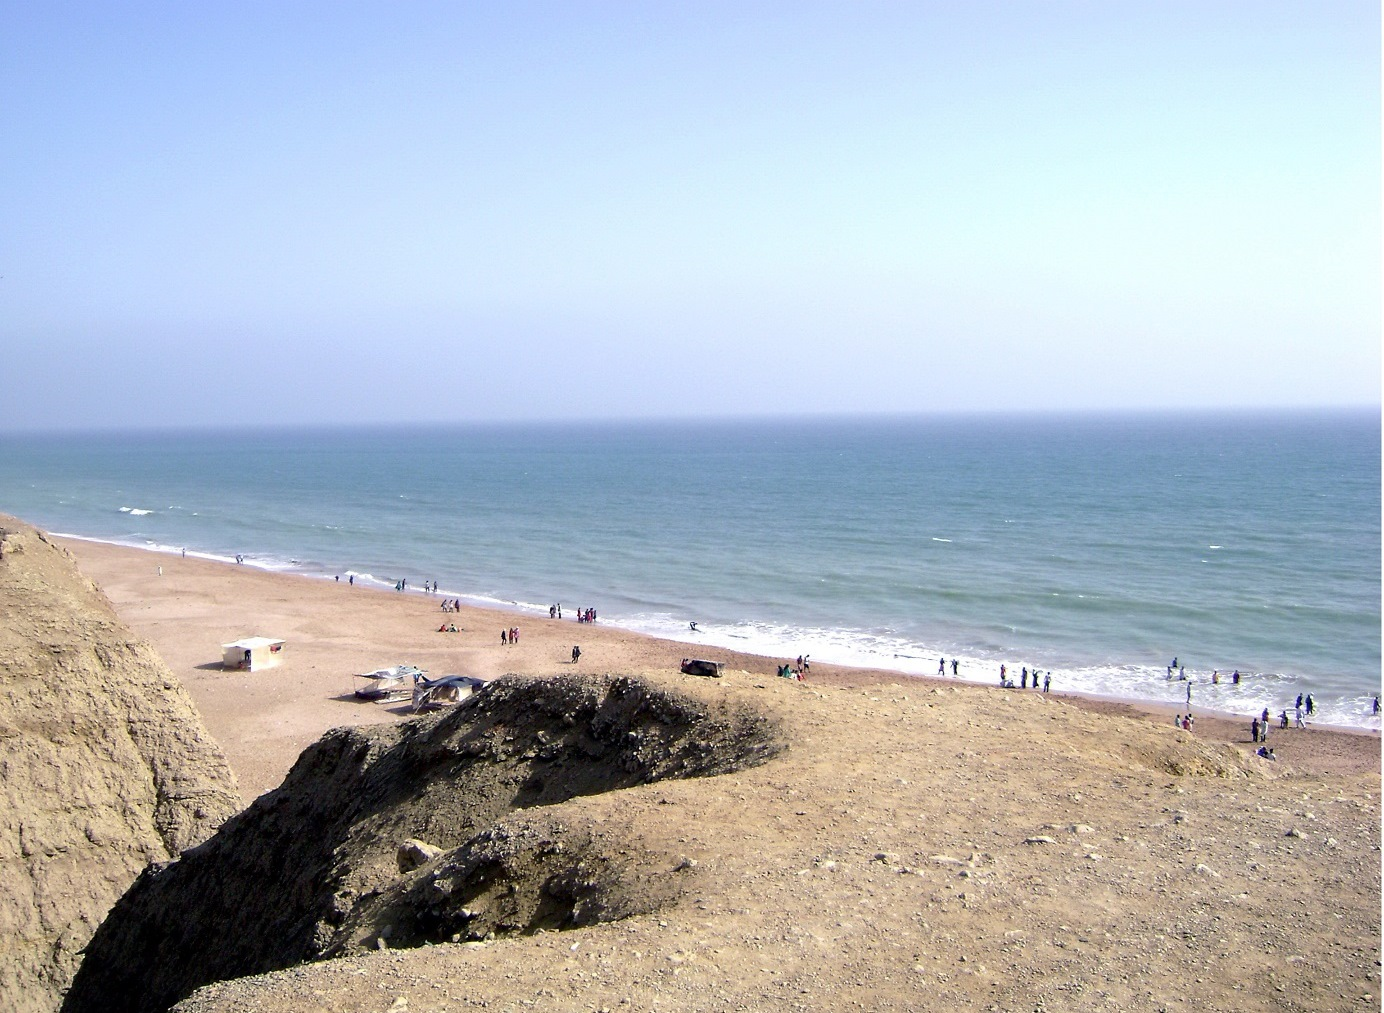 Hawkes Bay Karachi, A Beautiful View of Hawks Bay Karachi Pakistan